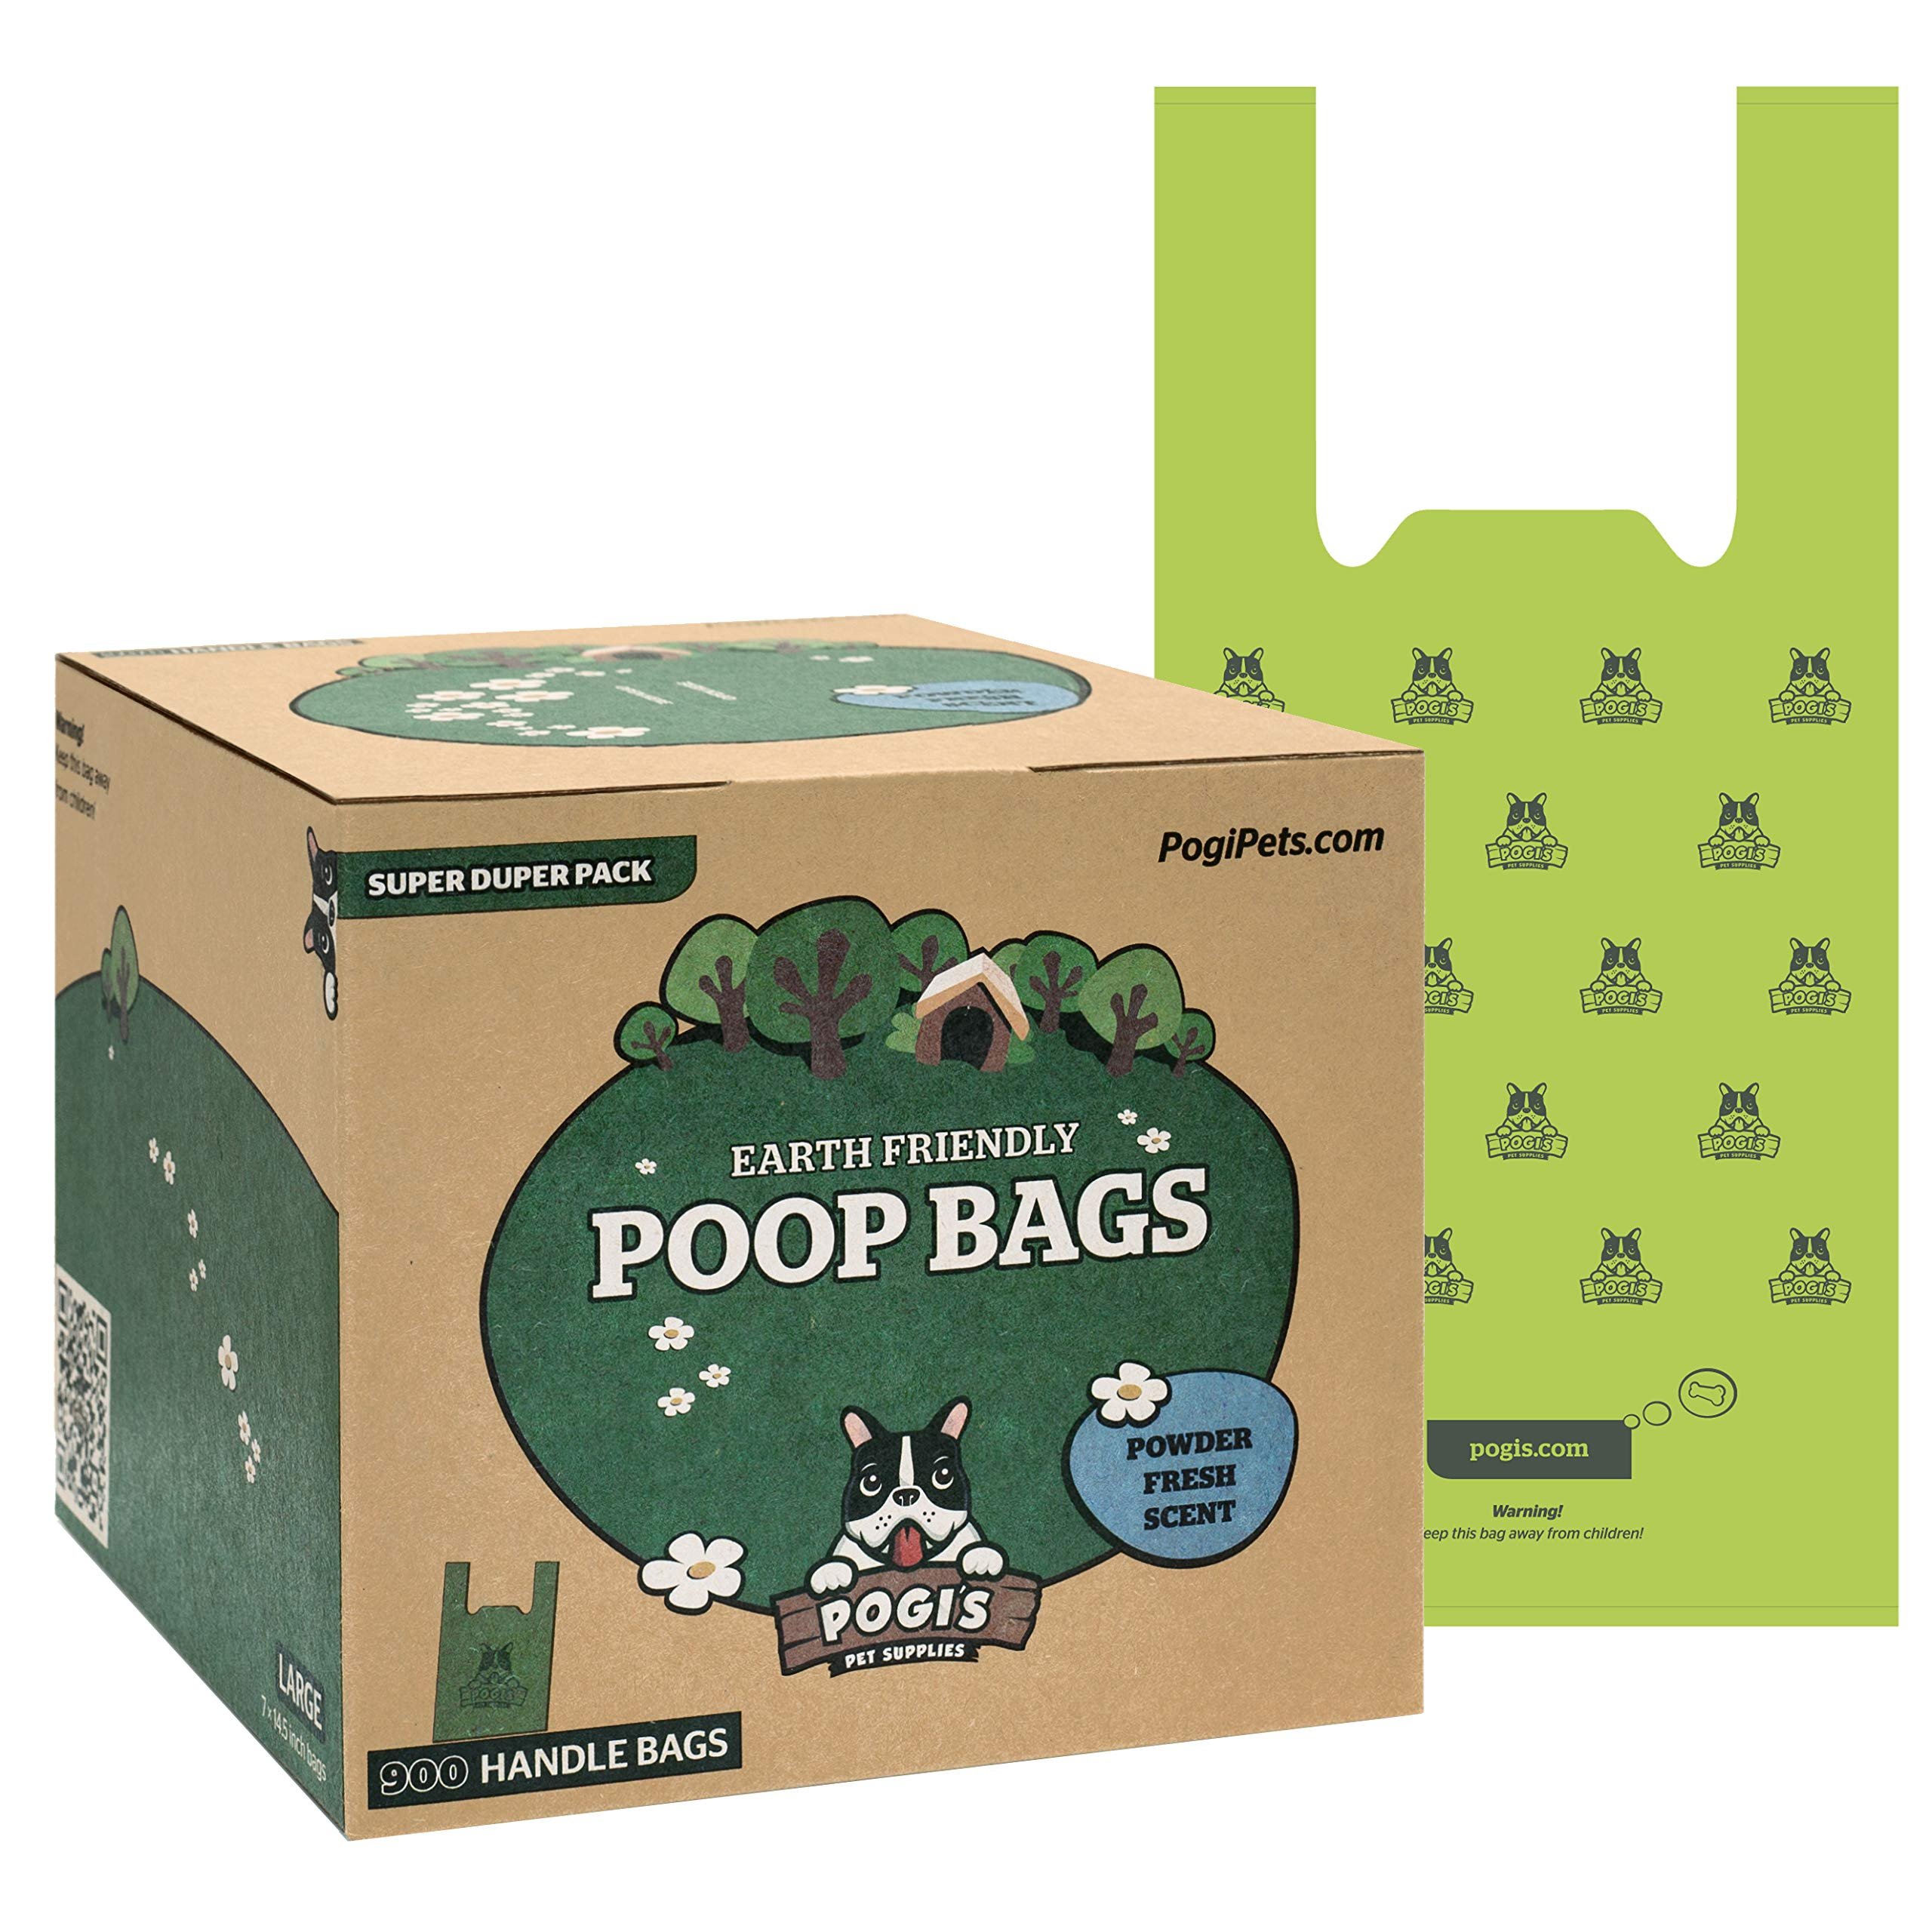 Pogi's Poop Bags - 900 Bags with Easy-Tie Handles - Large, Earth-Friendly, Scented, Leak-Proof Pet Waste Bags by Pogi's Pet Supplies